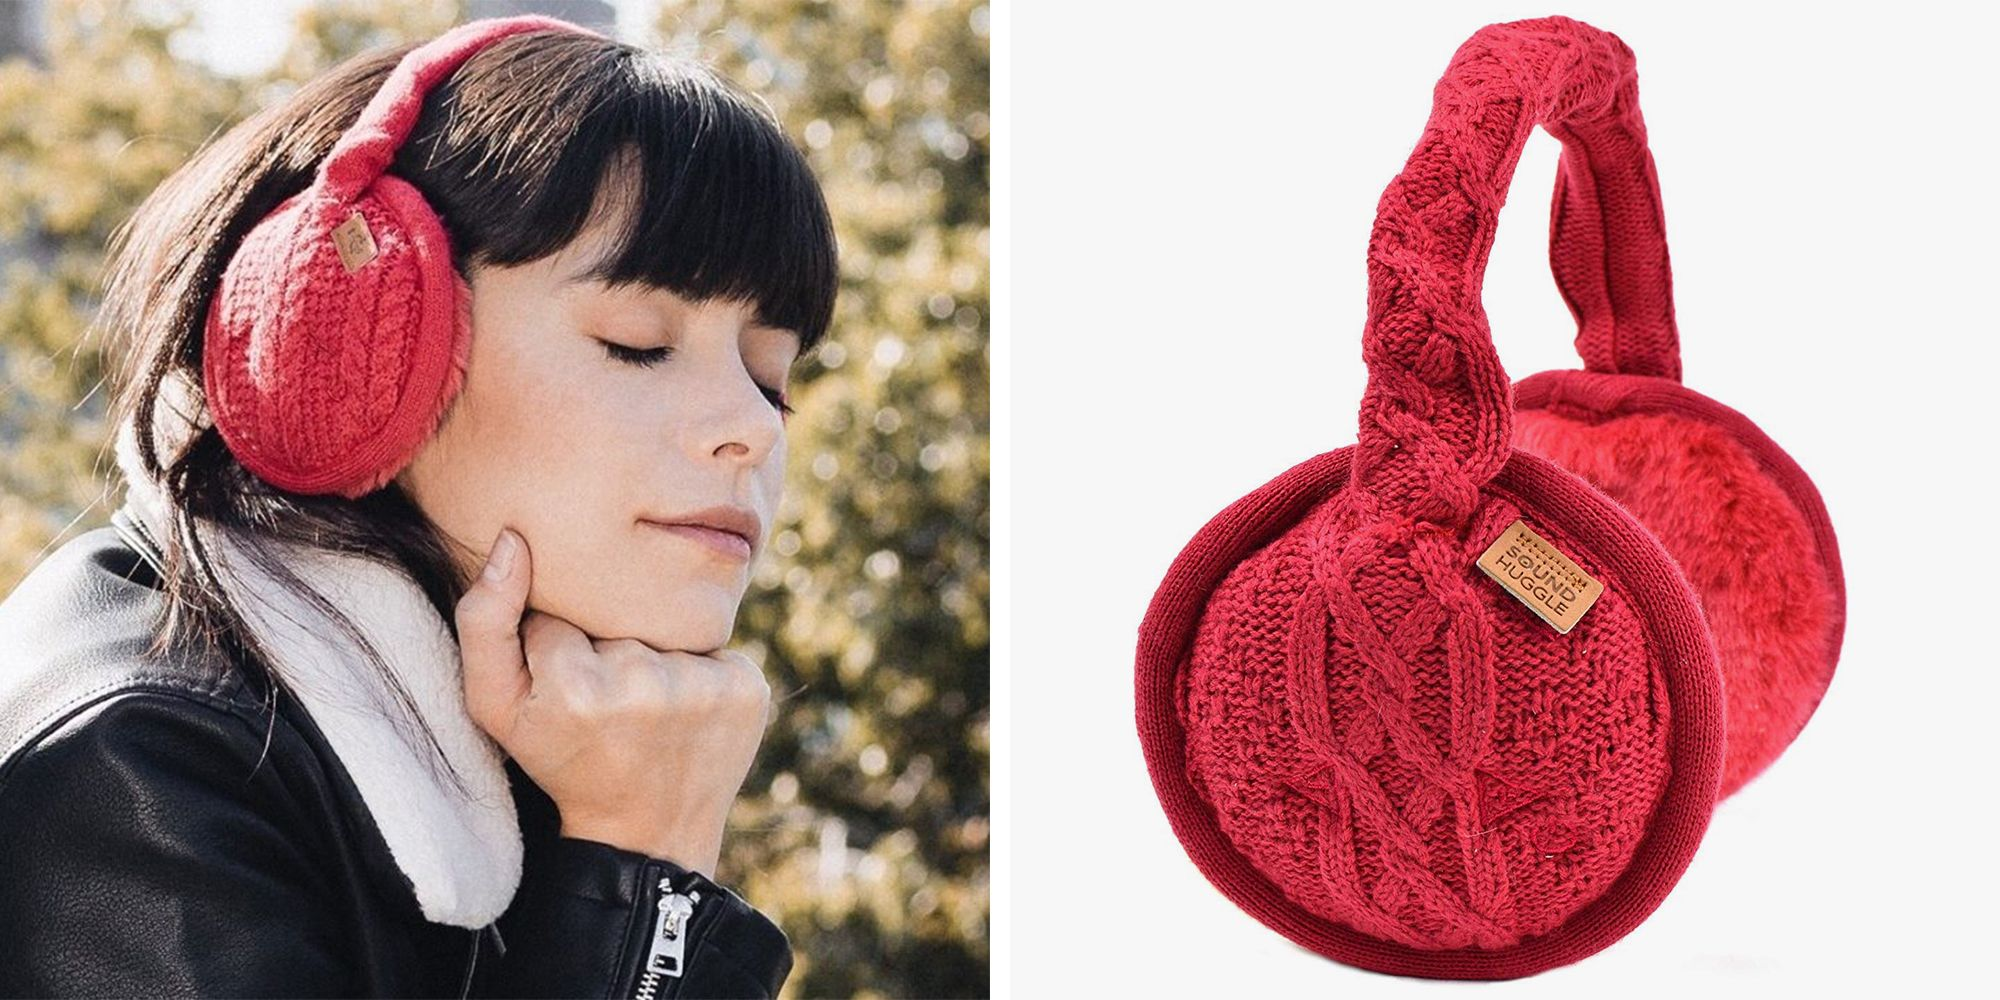 These Earmuffs Double as Headphones, So You'll Stay Warm While Jamming Out